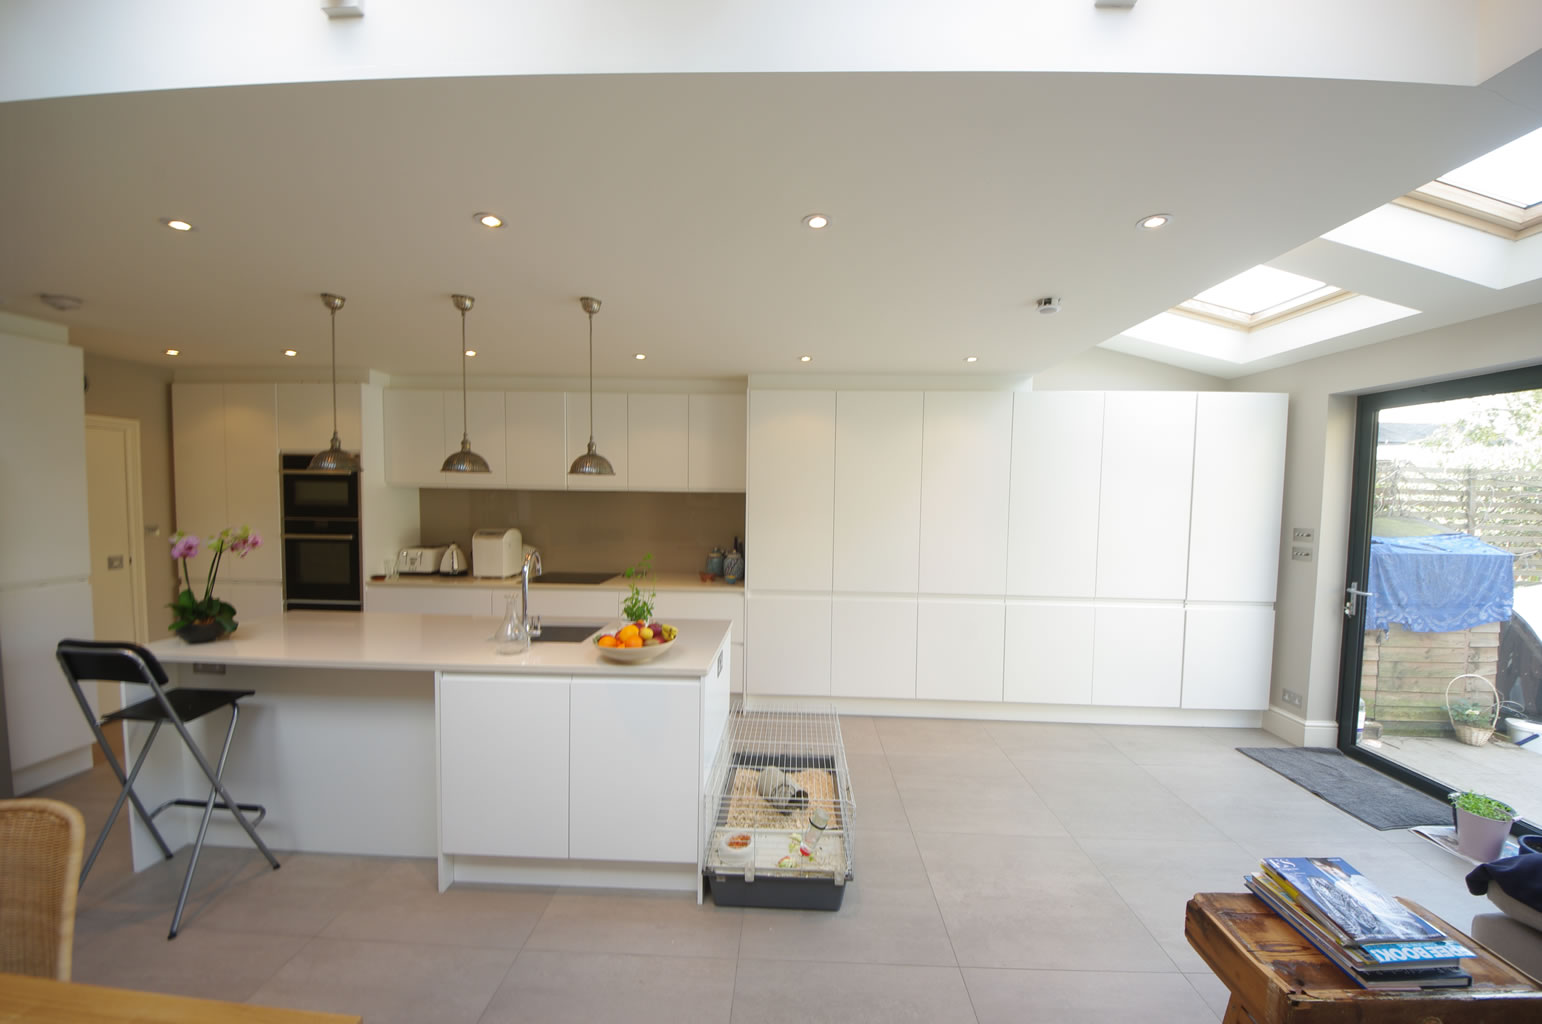 Extensions | The London Kitchen Extensions Company - Part 2